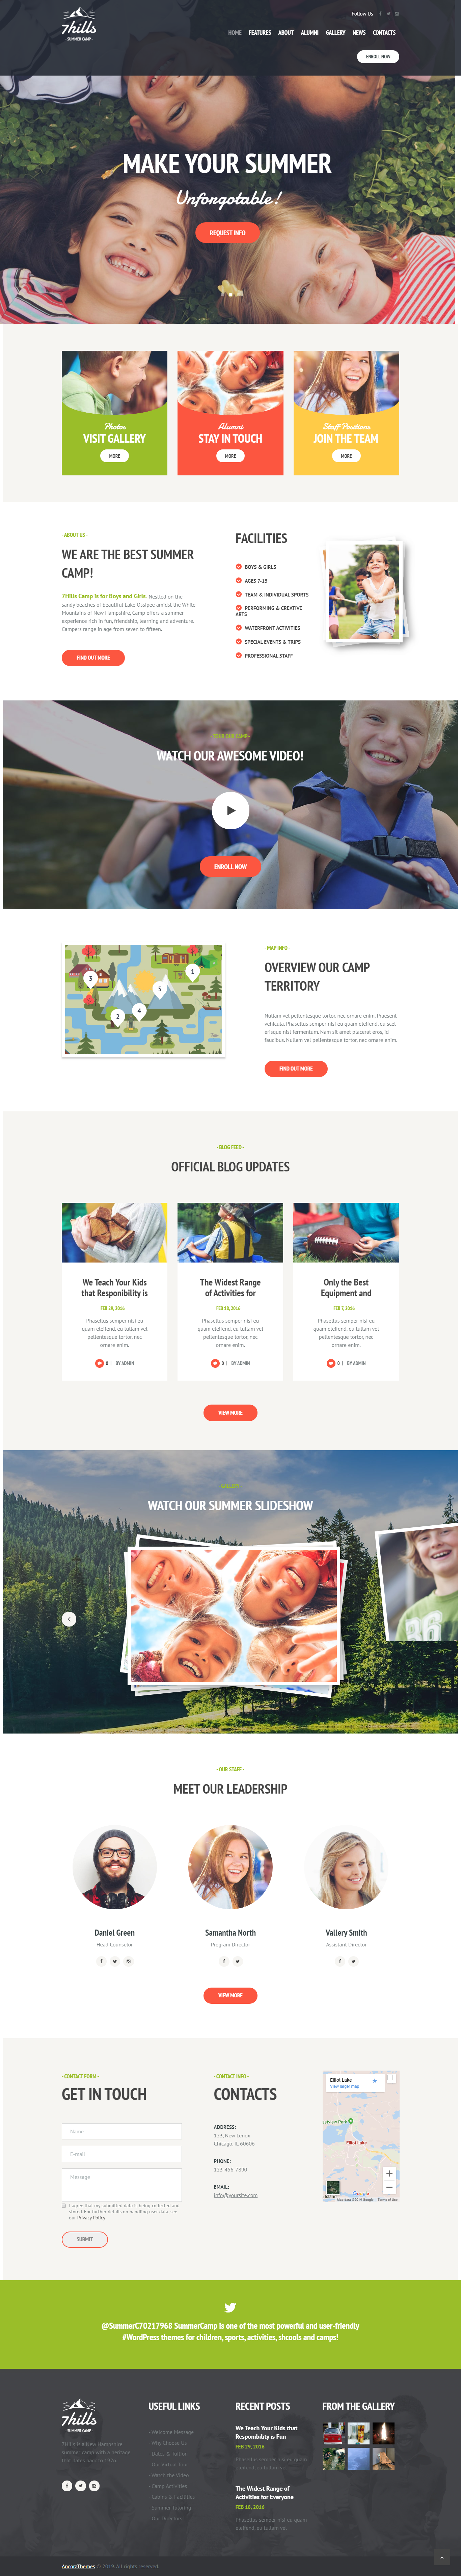 Sevenhills - Best Premium Outdoor Activities WordPress Theme